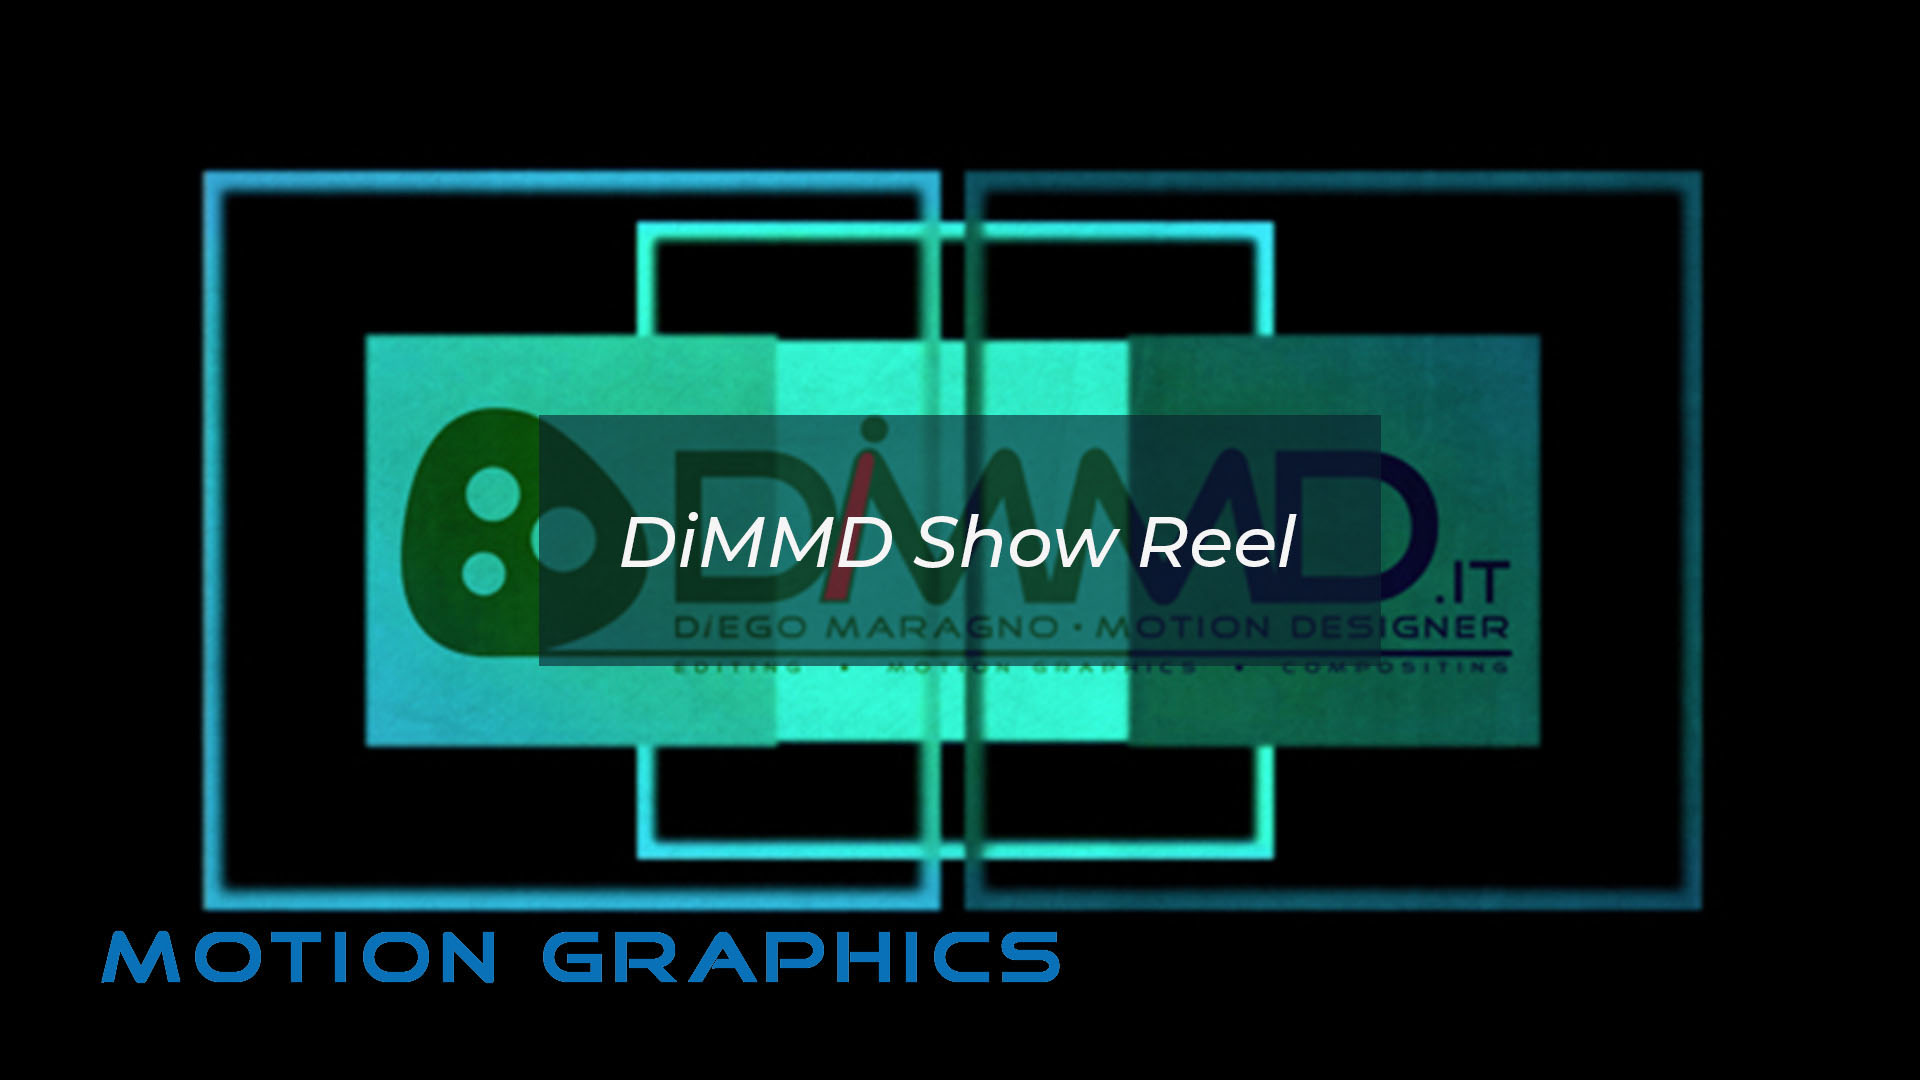 DiMMD Show Reel Motion Graphics